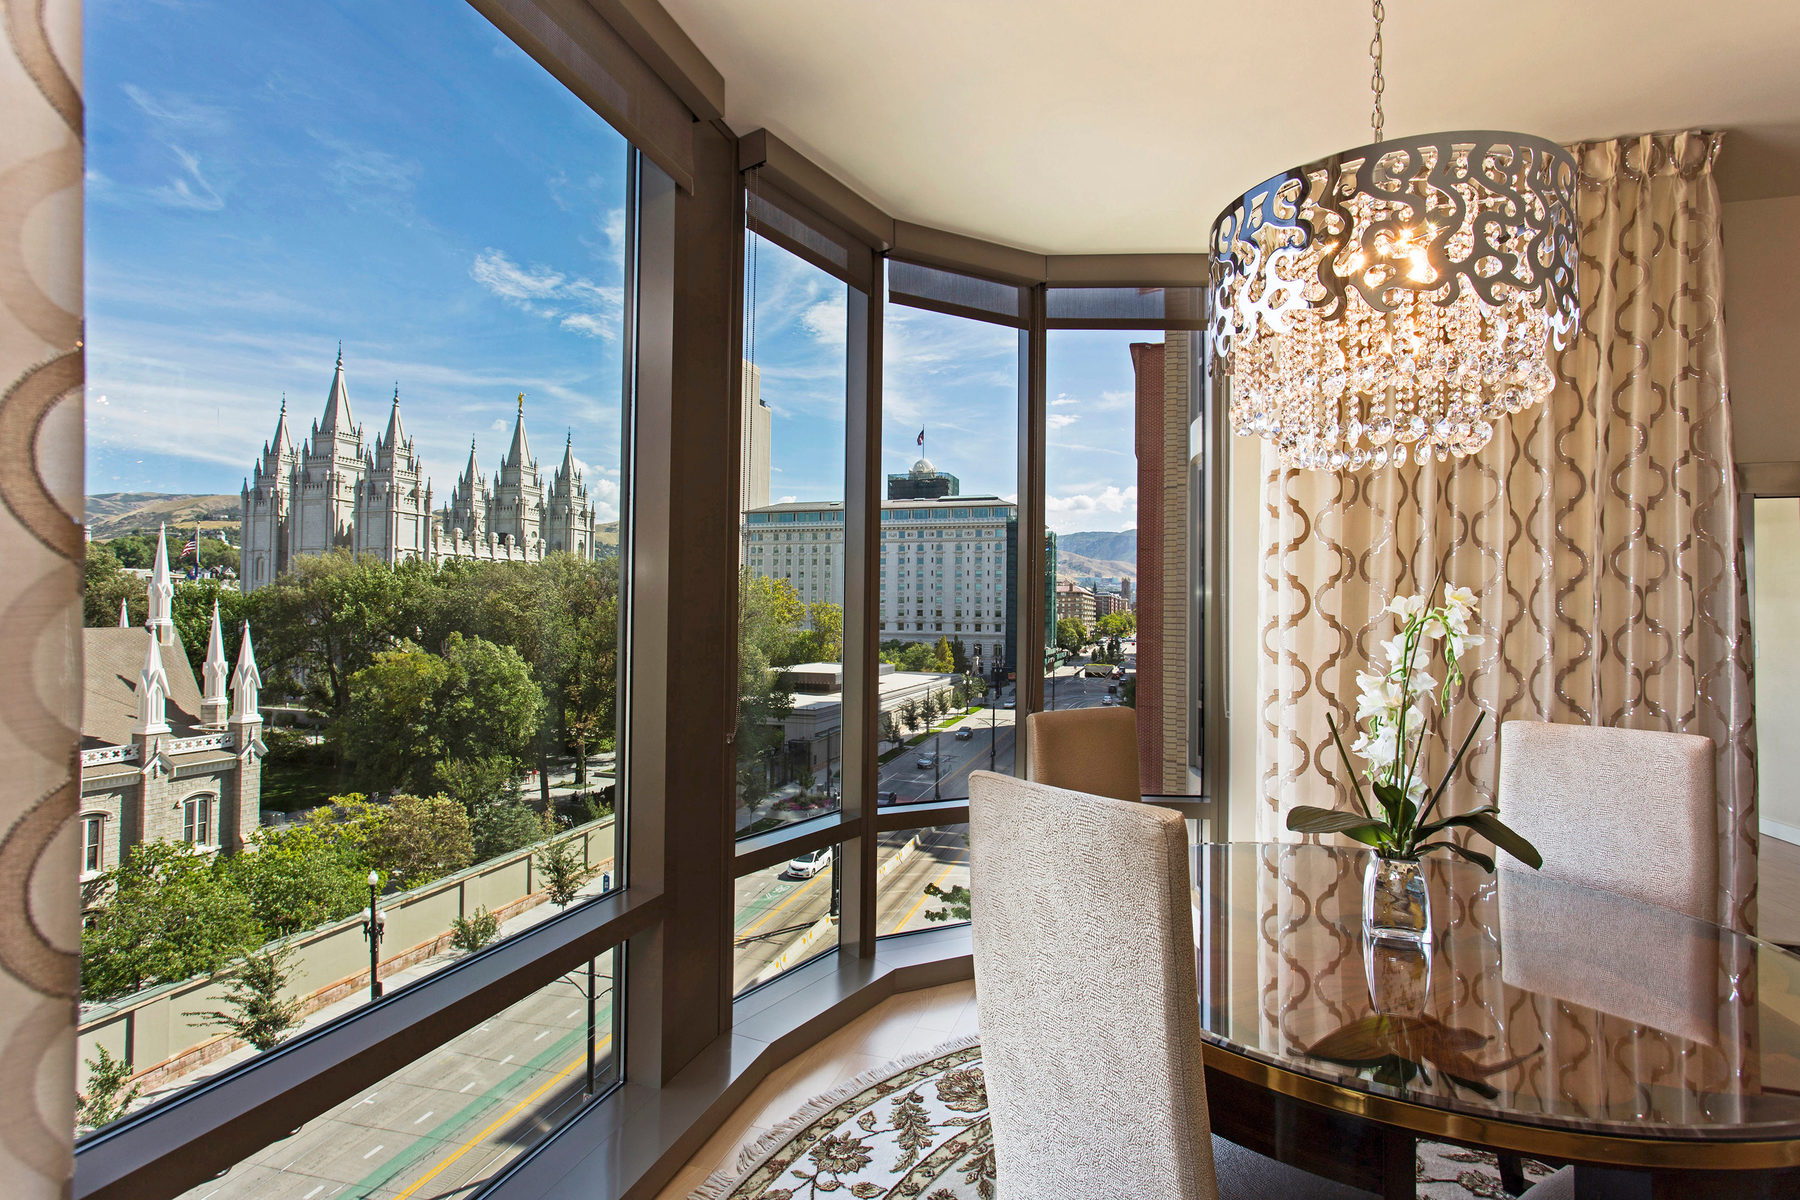 Copropriété pour l Vente à Captivating Views and Exquisite Design and Interior 99 W South Temple St #606 Salt Lake City, Utah, 84101 États-Unis